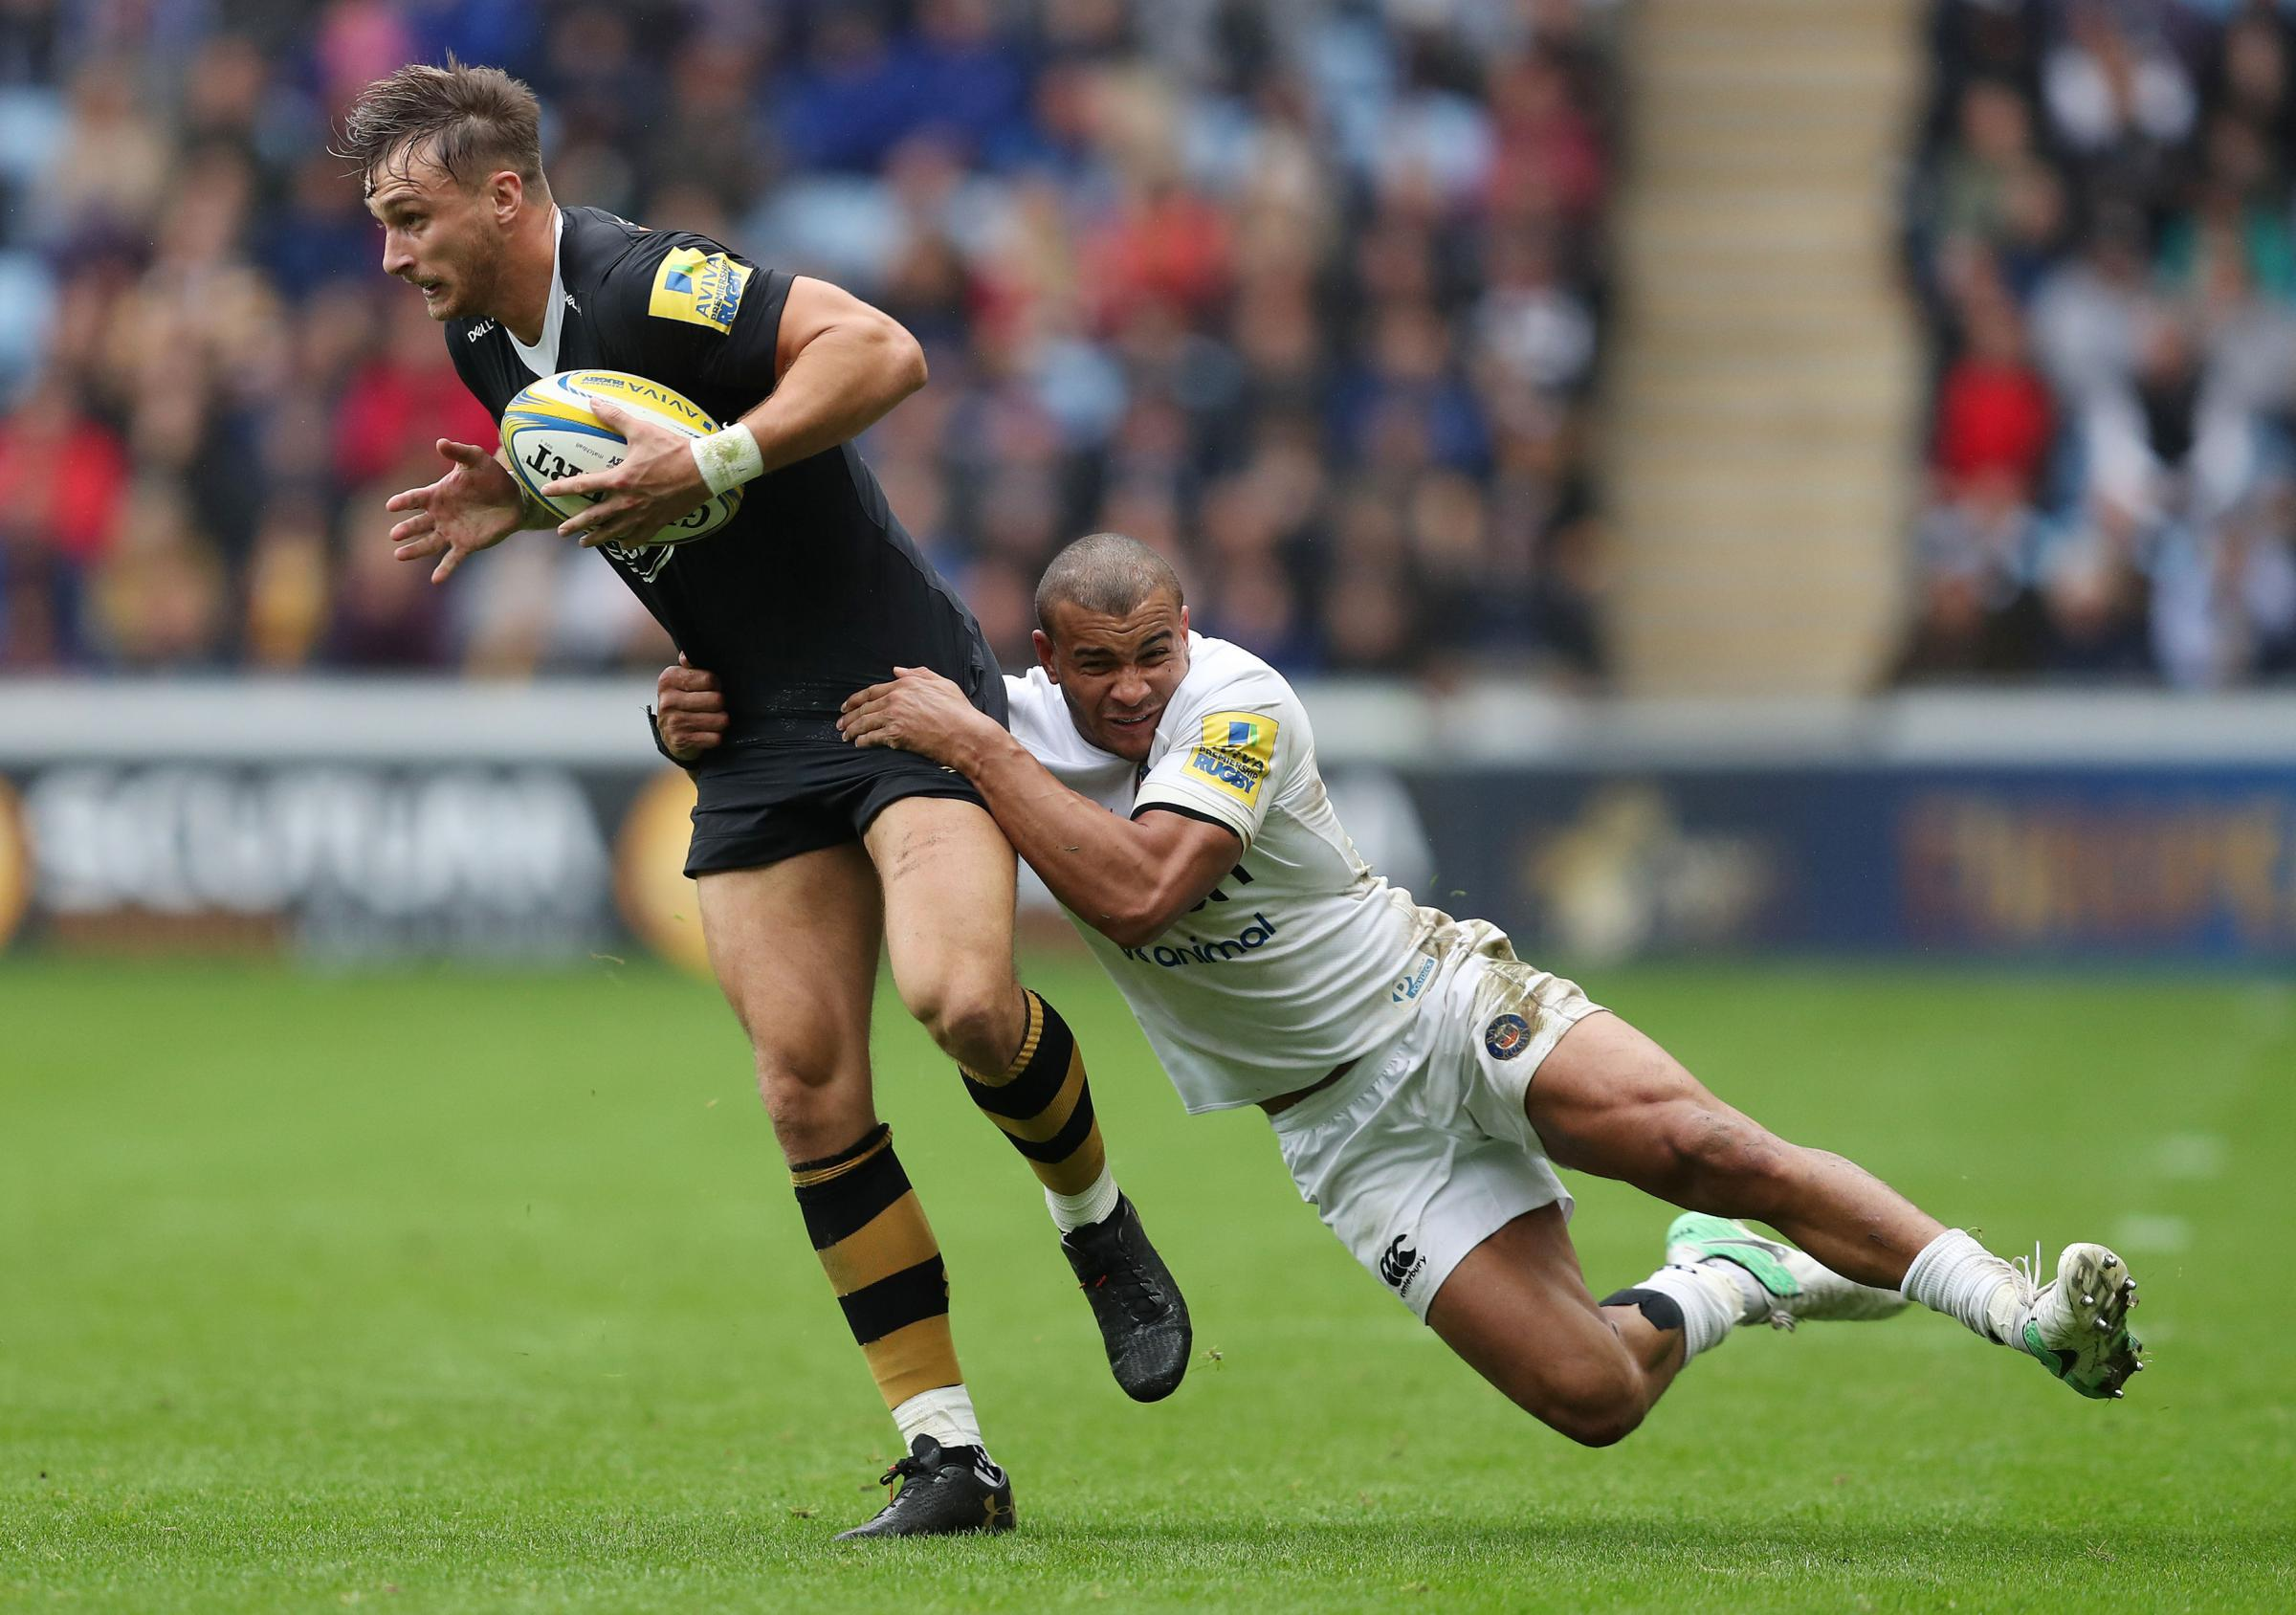 Wasps Josh Bassett is tackled by Bath's Jonathan Joseph